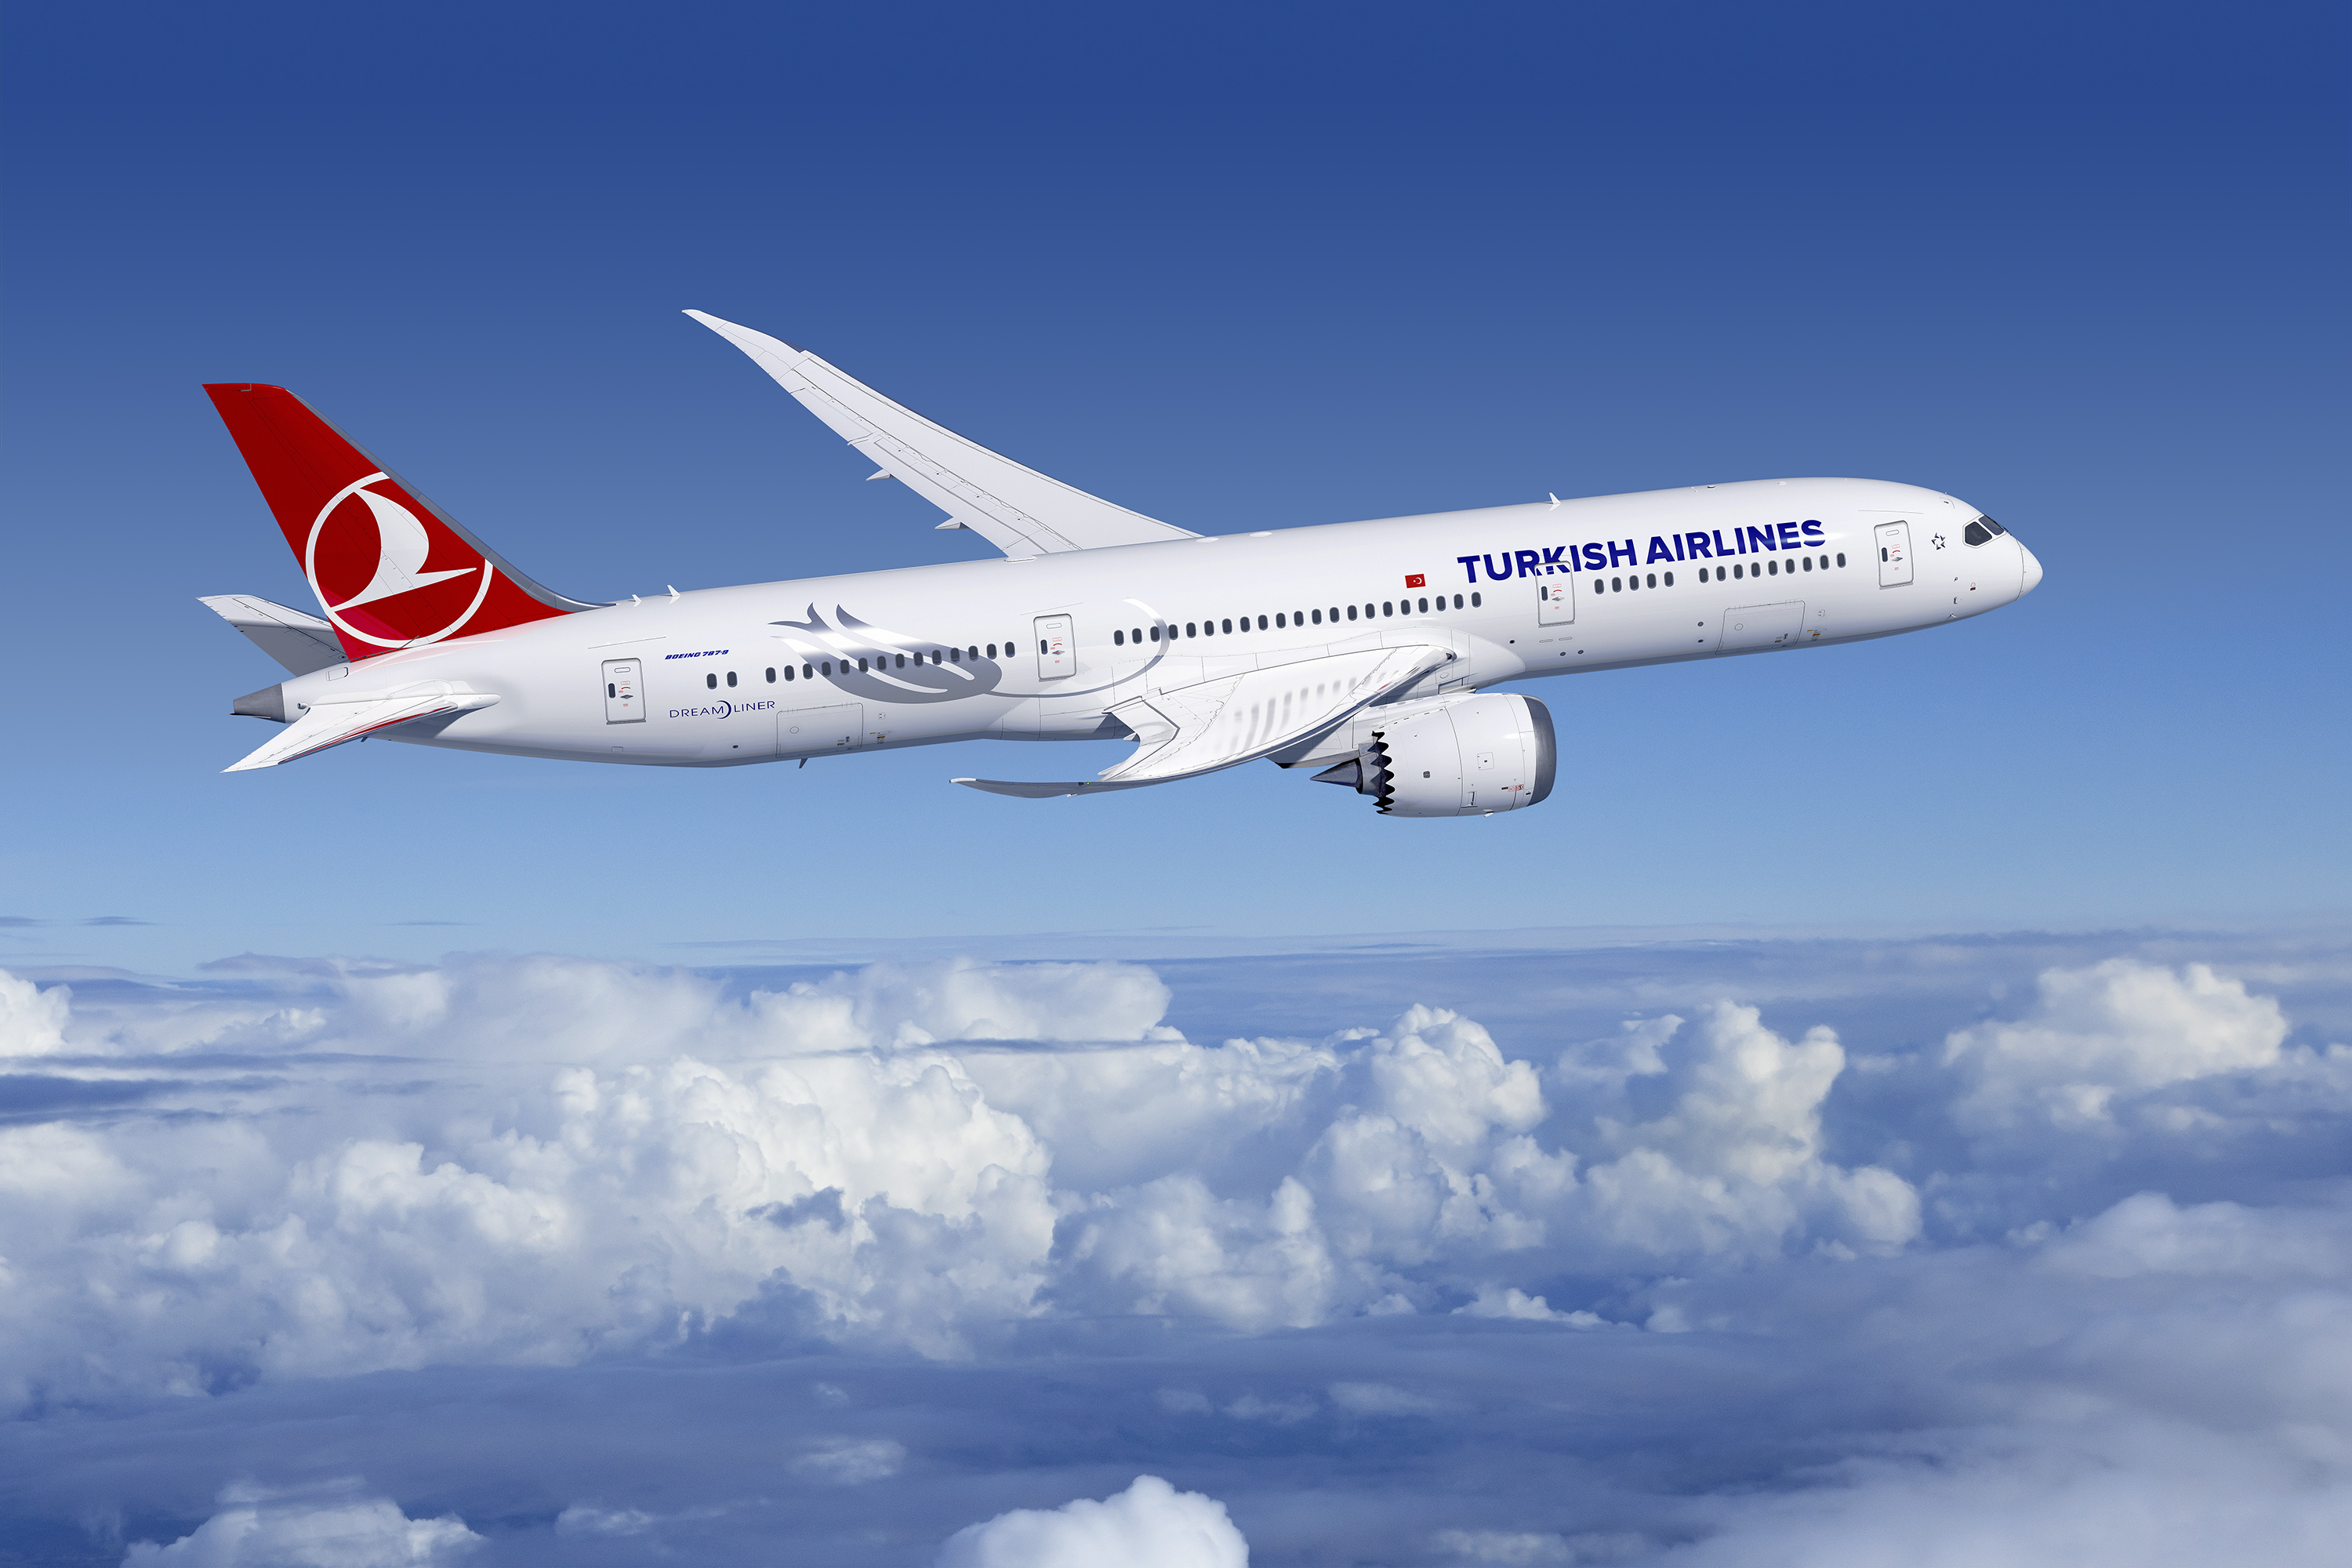 Turkish Airlines has launched a 40 percent discount campaign for flights abroad